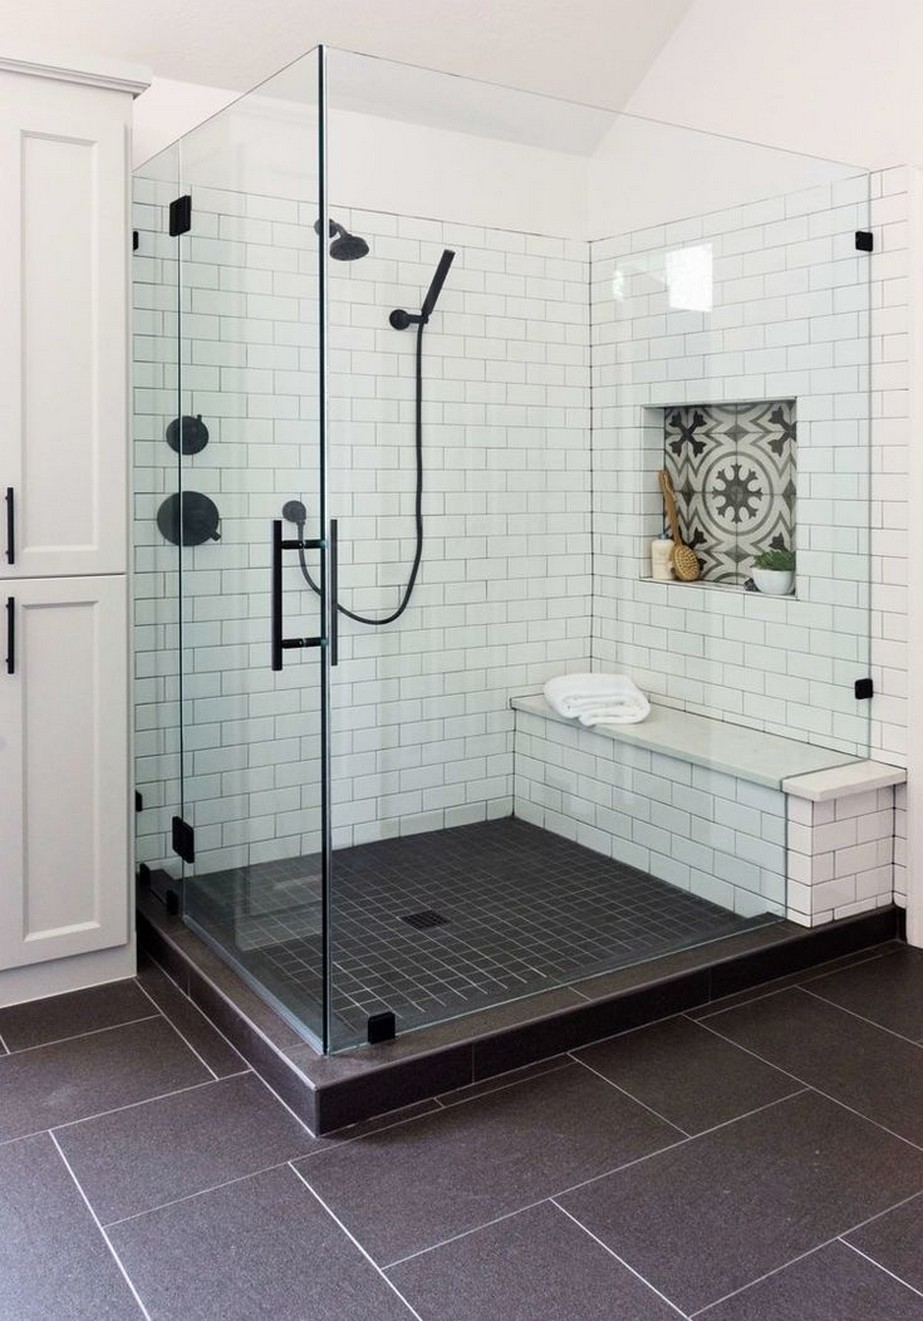 Permalink to ✔️ 31 Awesome Small Bathroom Tile Ideas